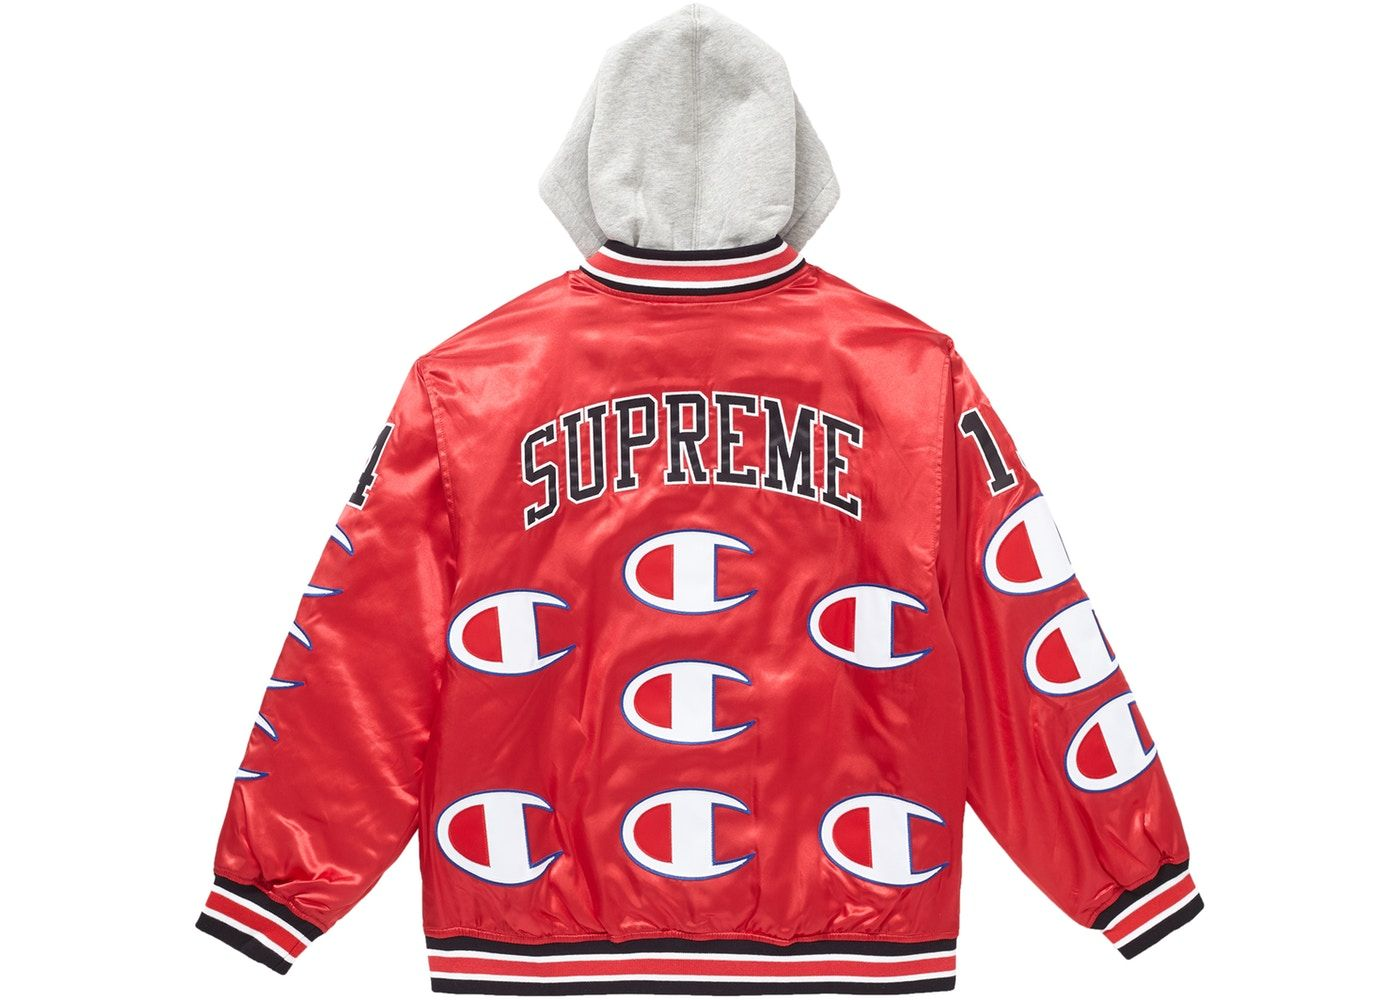 ba23aeb9 Supreme Champion Hooded Satin Varsity Jacket Red | Dope Merch ...